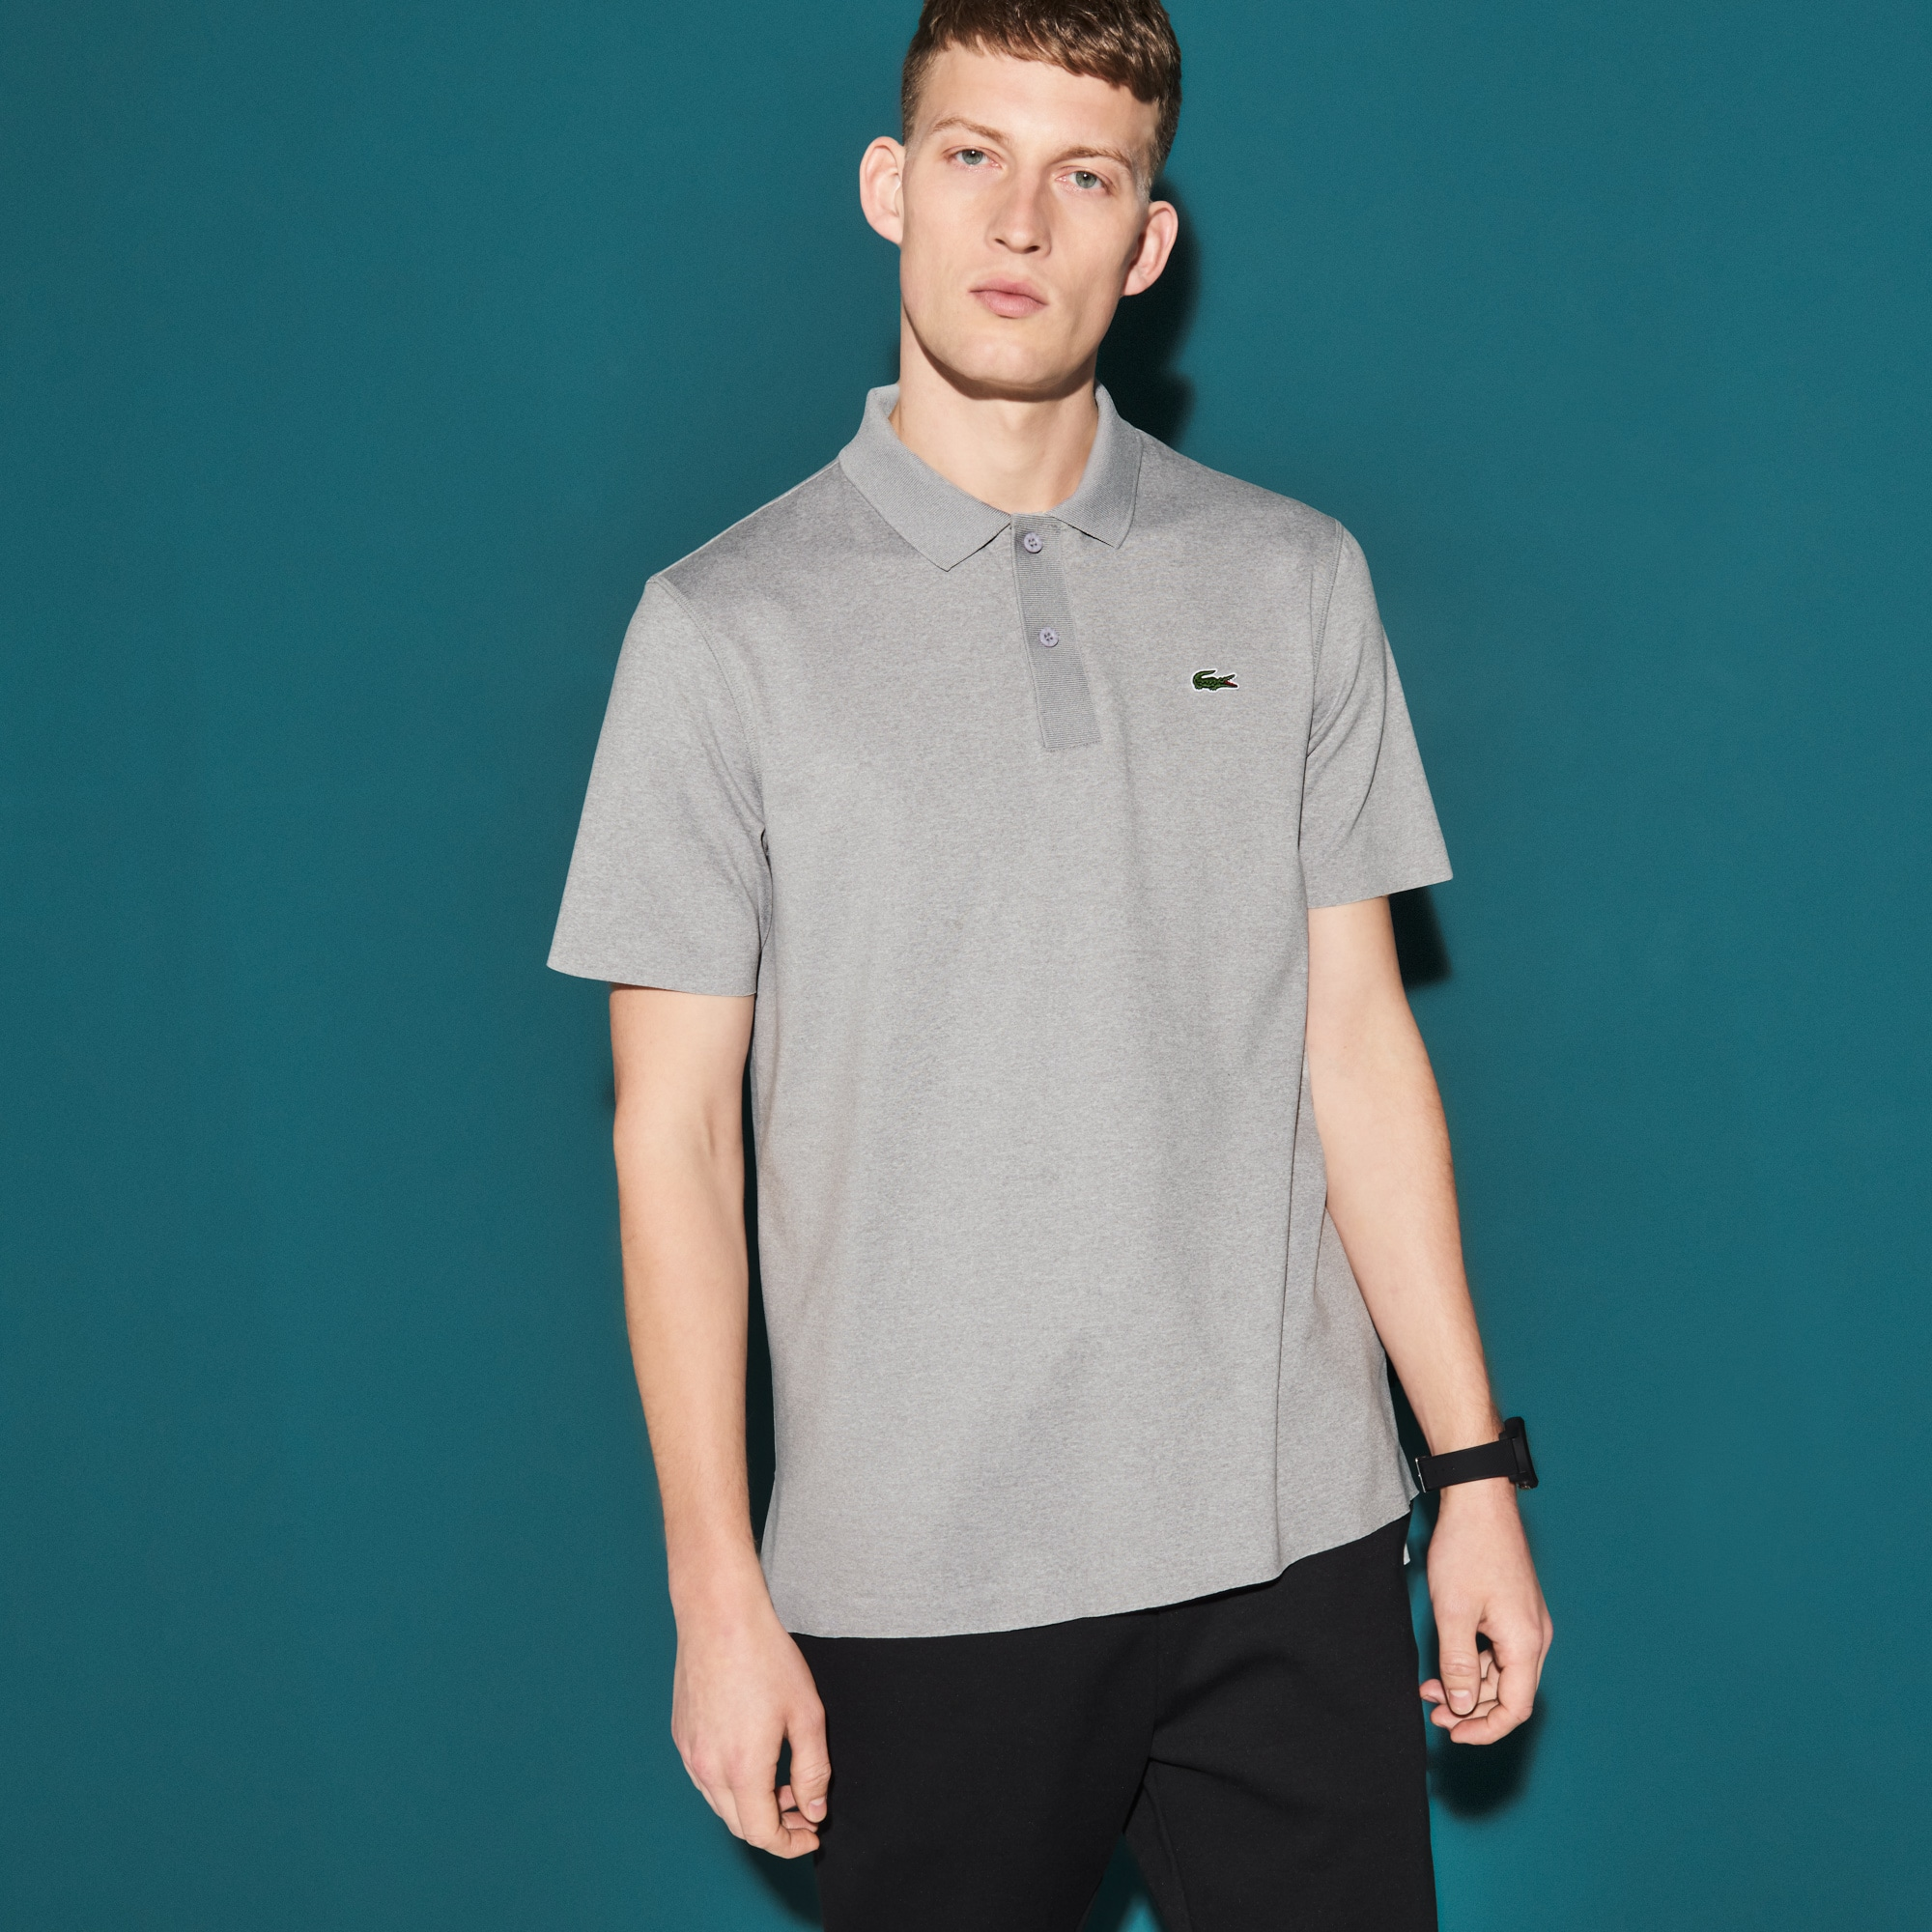 Men's SPORT Flecked Stretch Tennis Polo